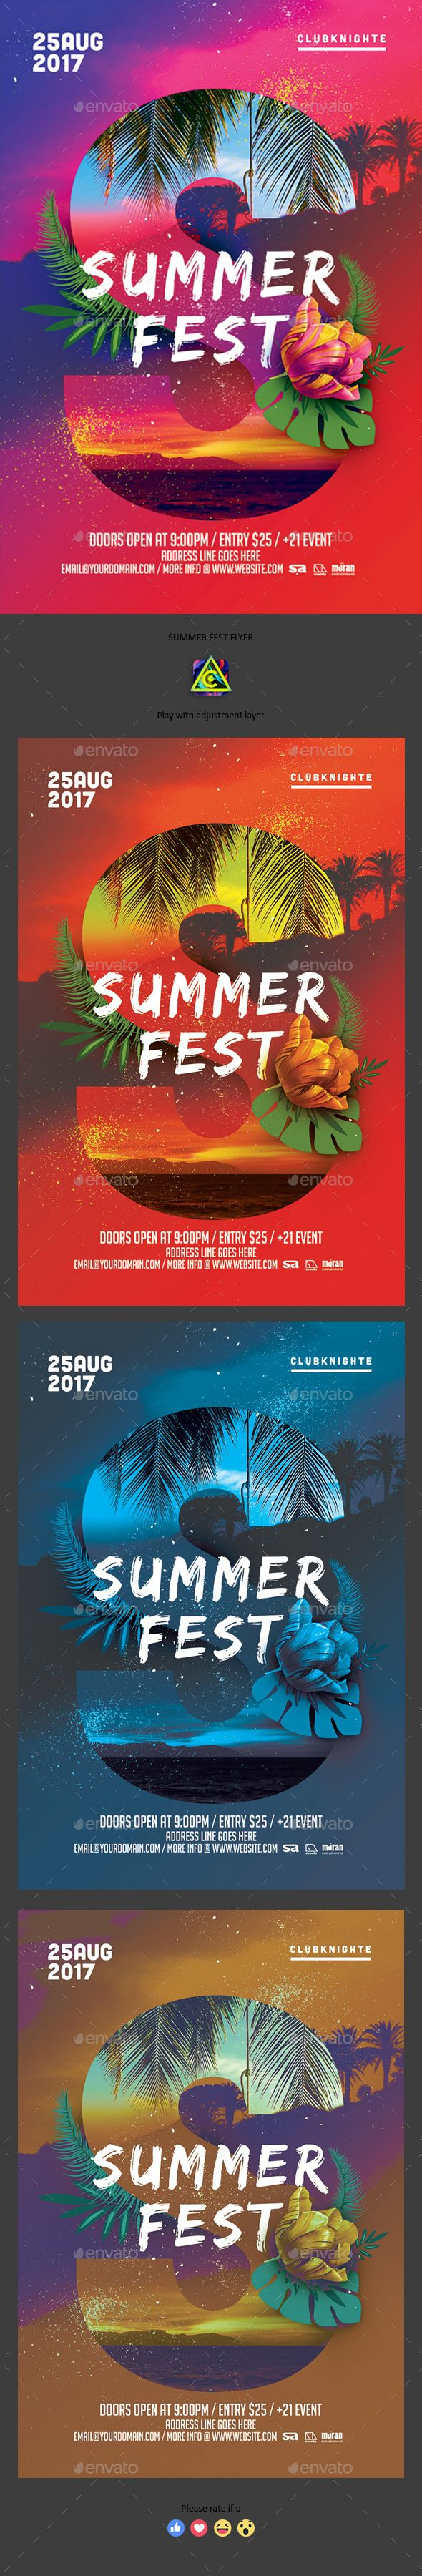 Summer Fest Flyer — Photoshop PSD #graphic #4x6 • Download ➝ https://graphicriver.net/item/summer-fest-flyer/20369021?ref=pxcr